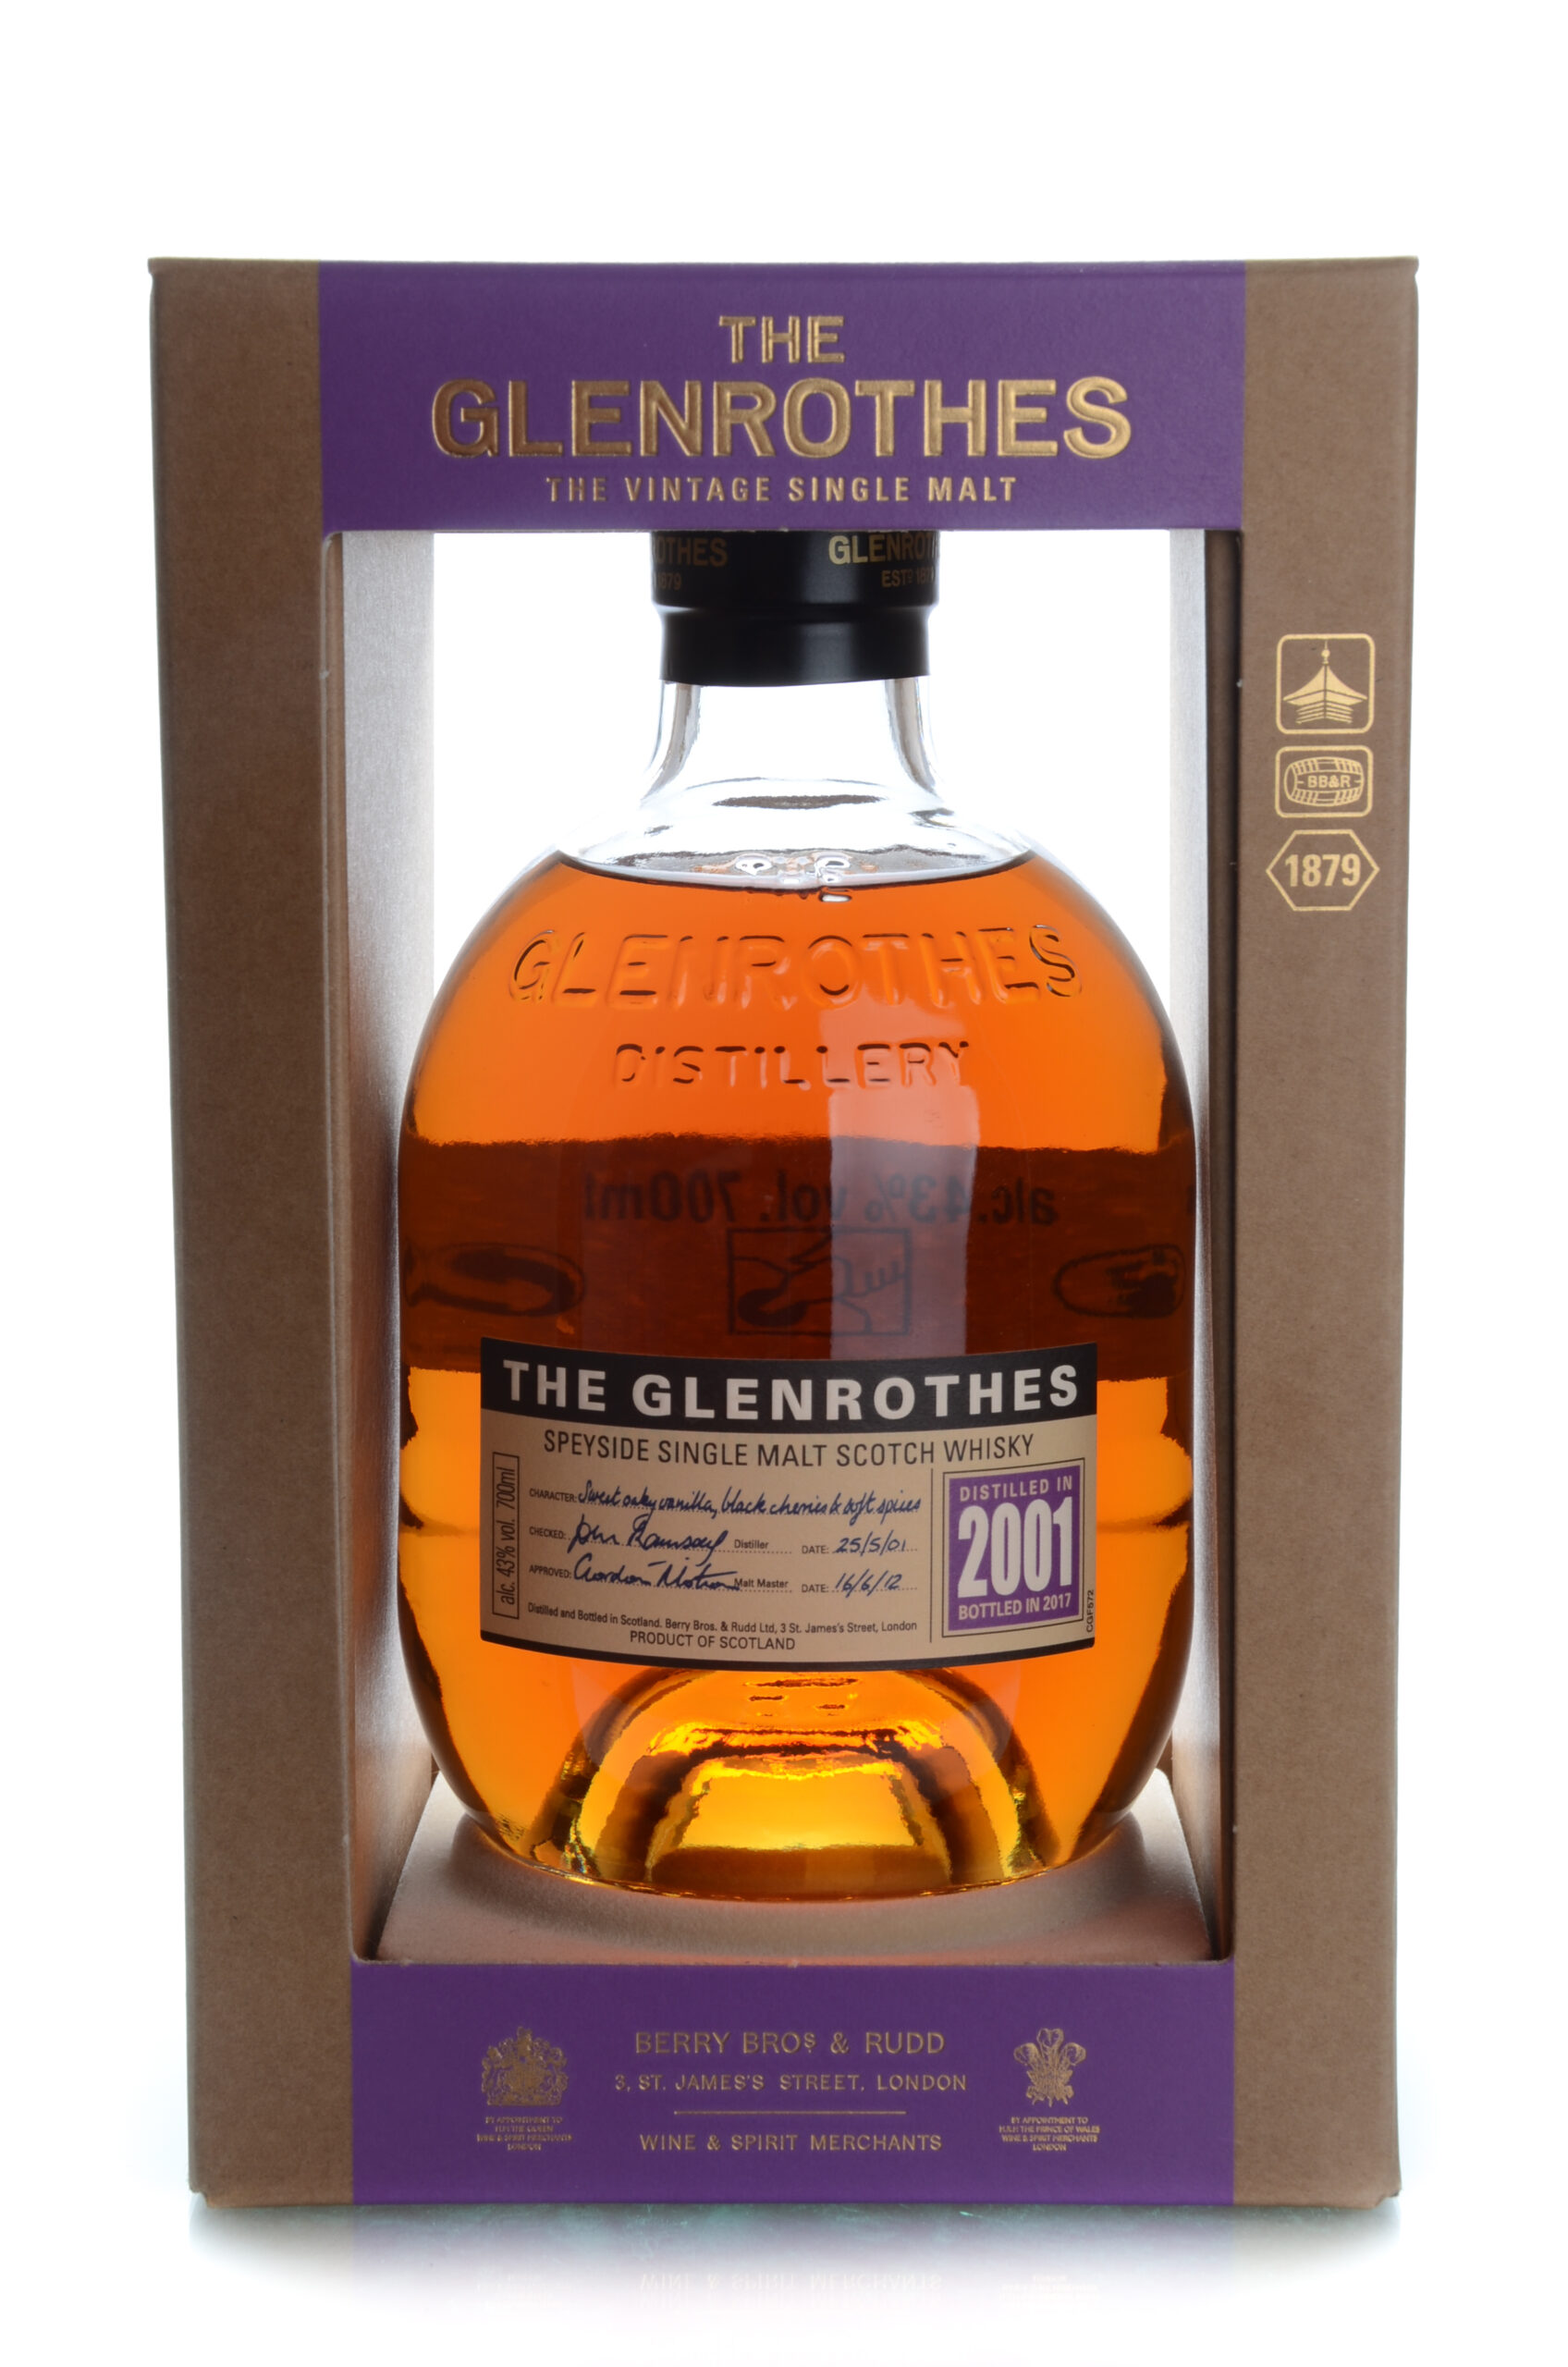 The Glenrothes 2001